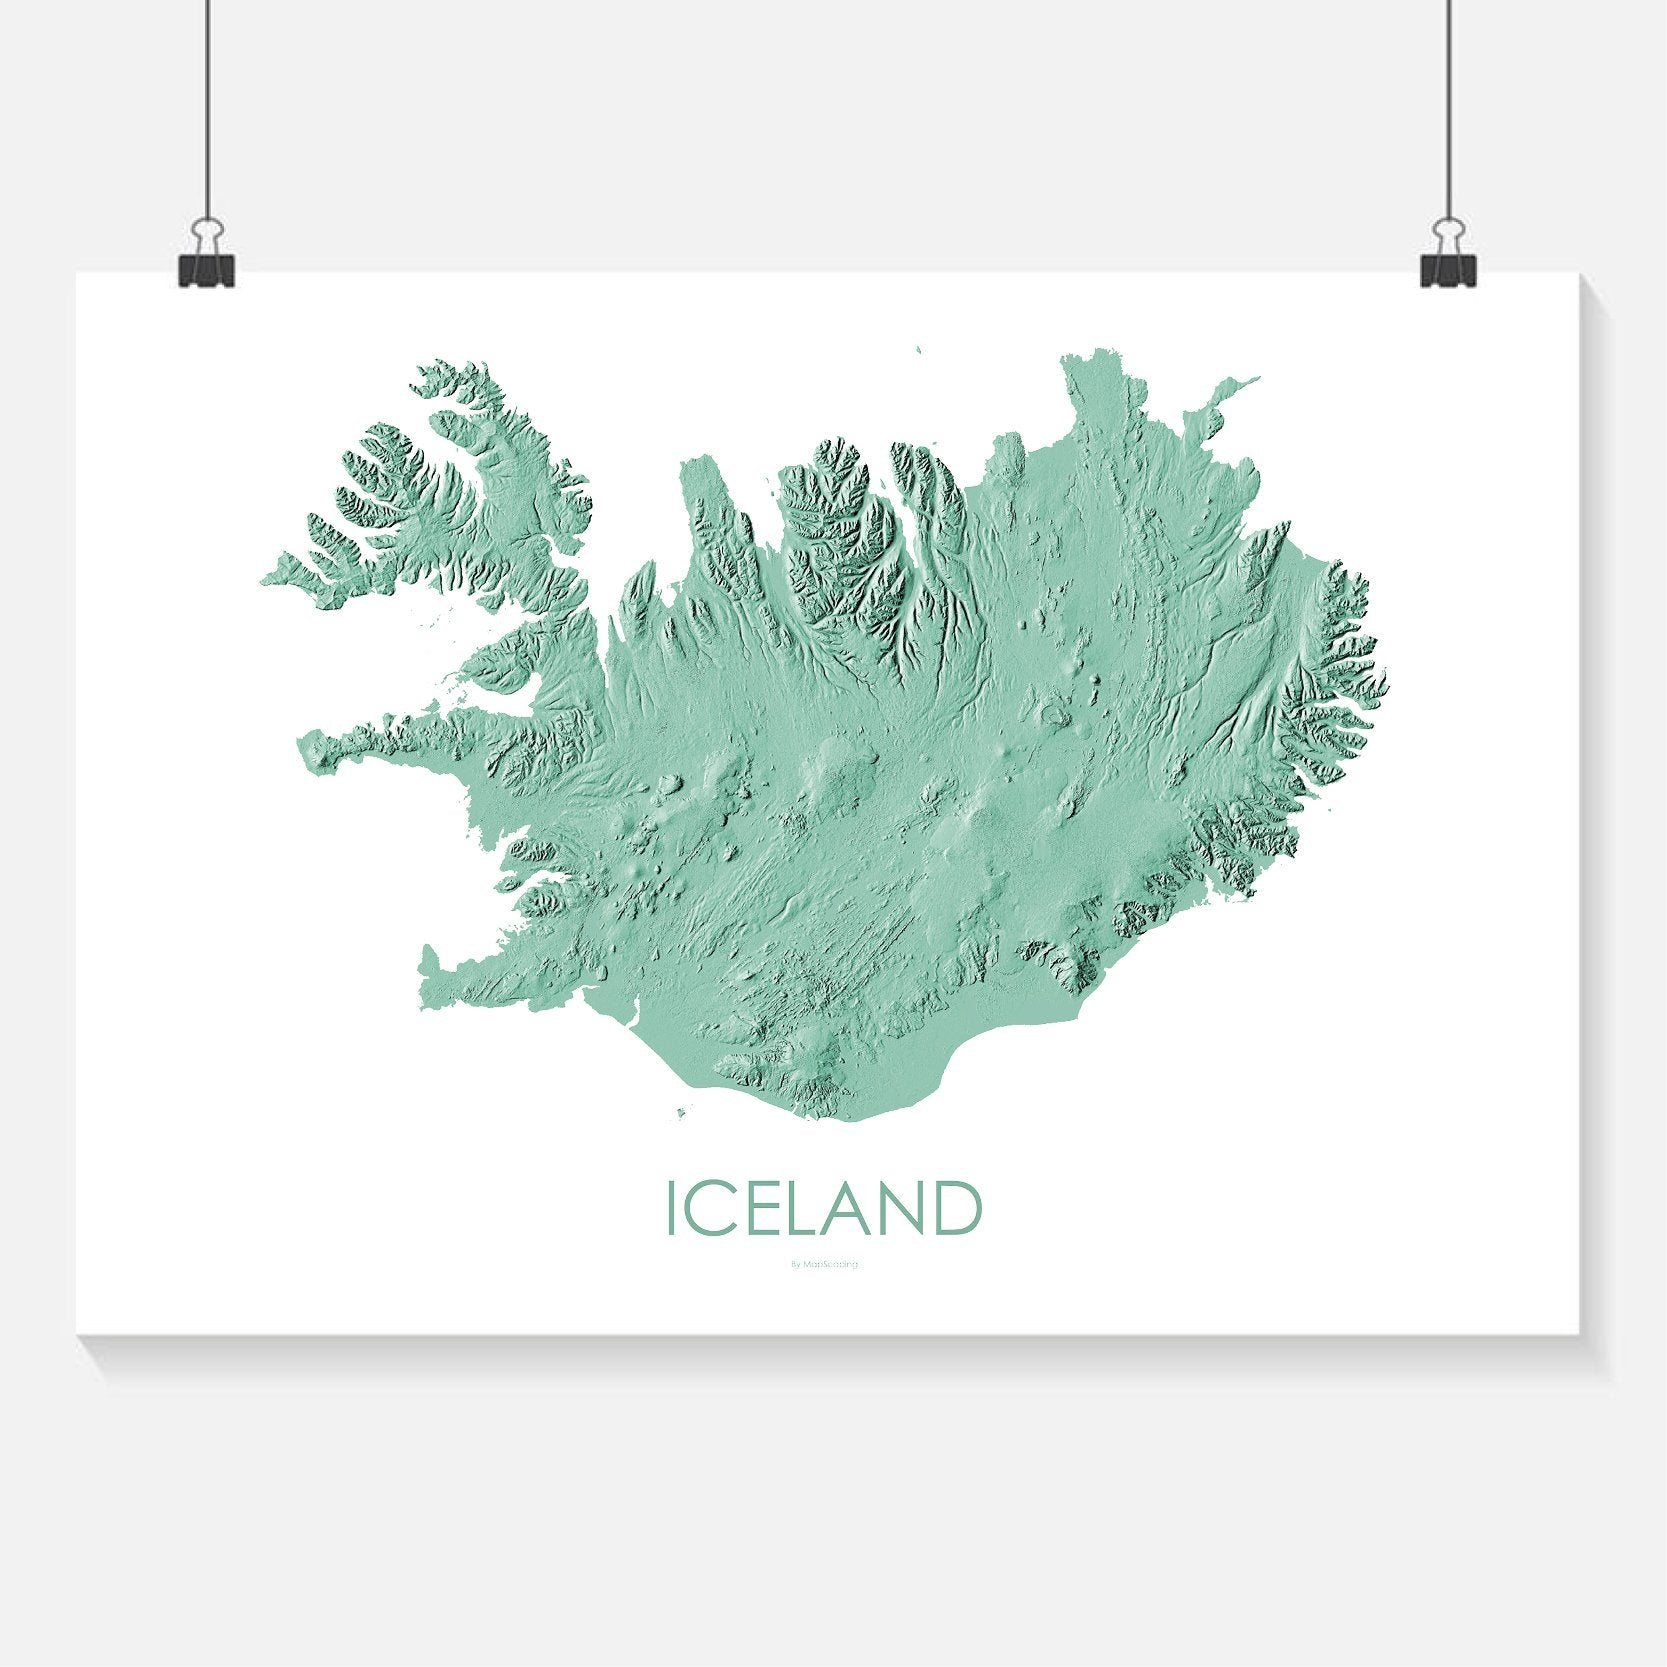 Iceland Poster Solid Mint -Topographic map art by MapScaping